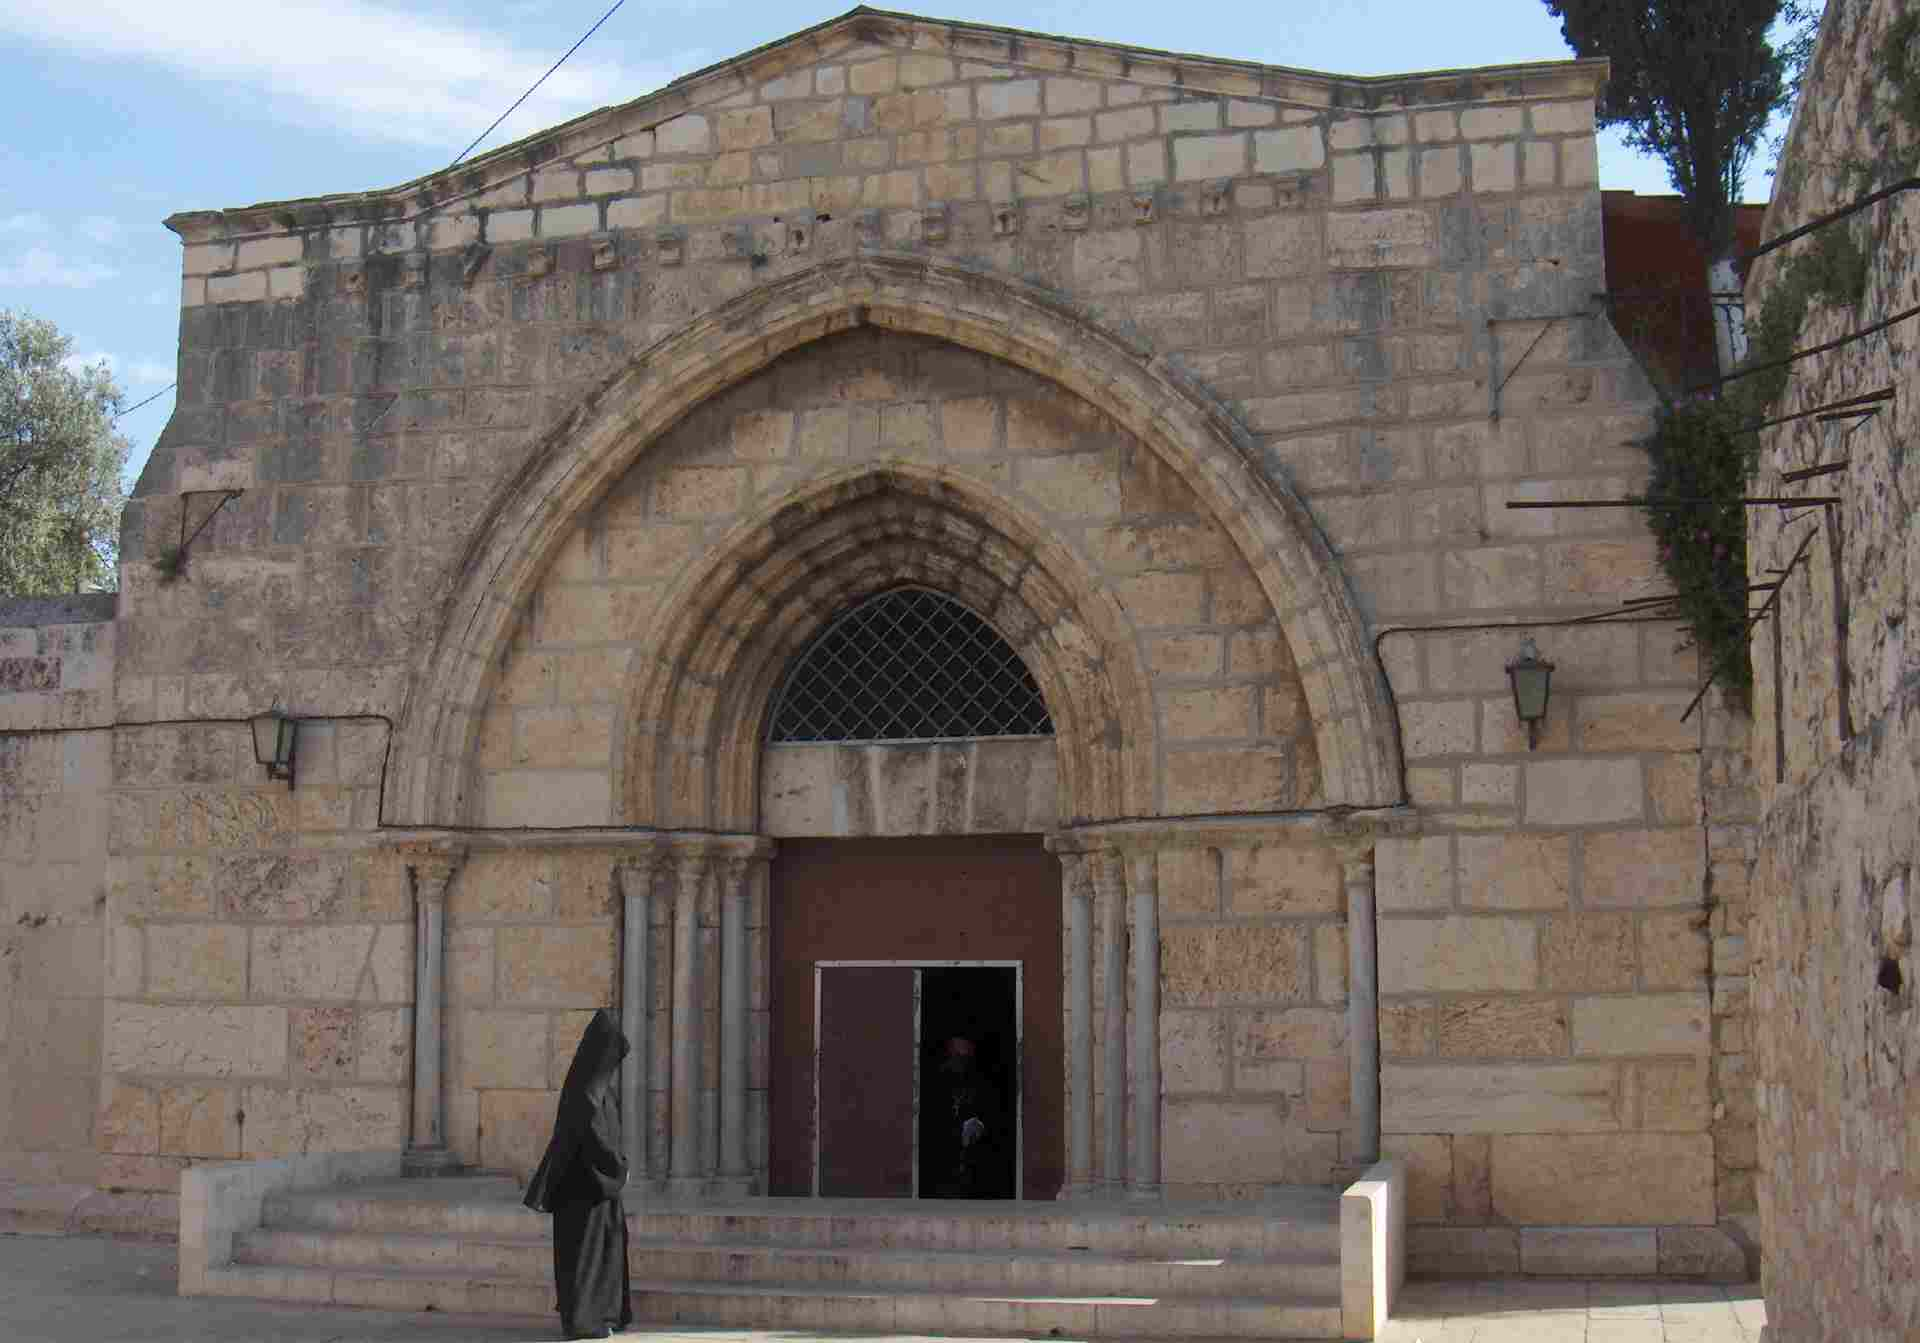 Tomb of the Virgin Mary, Jerusalem, Israel, Armenian priest at entrance